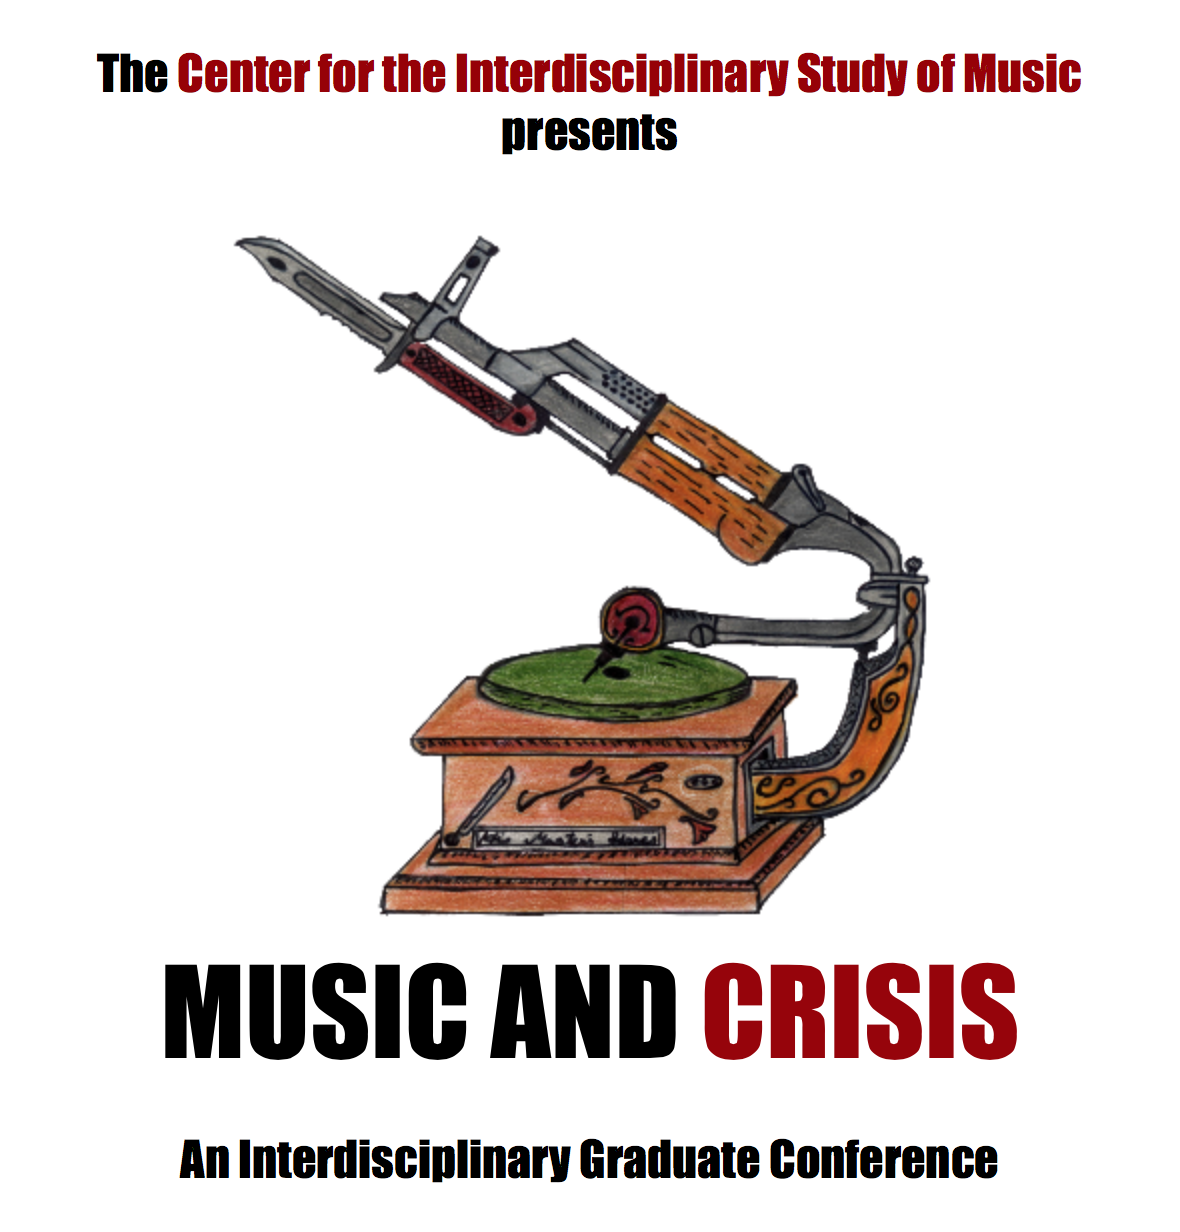 music and crisis poster